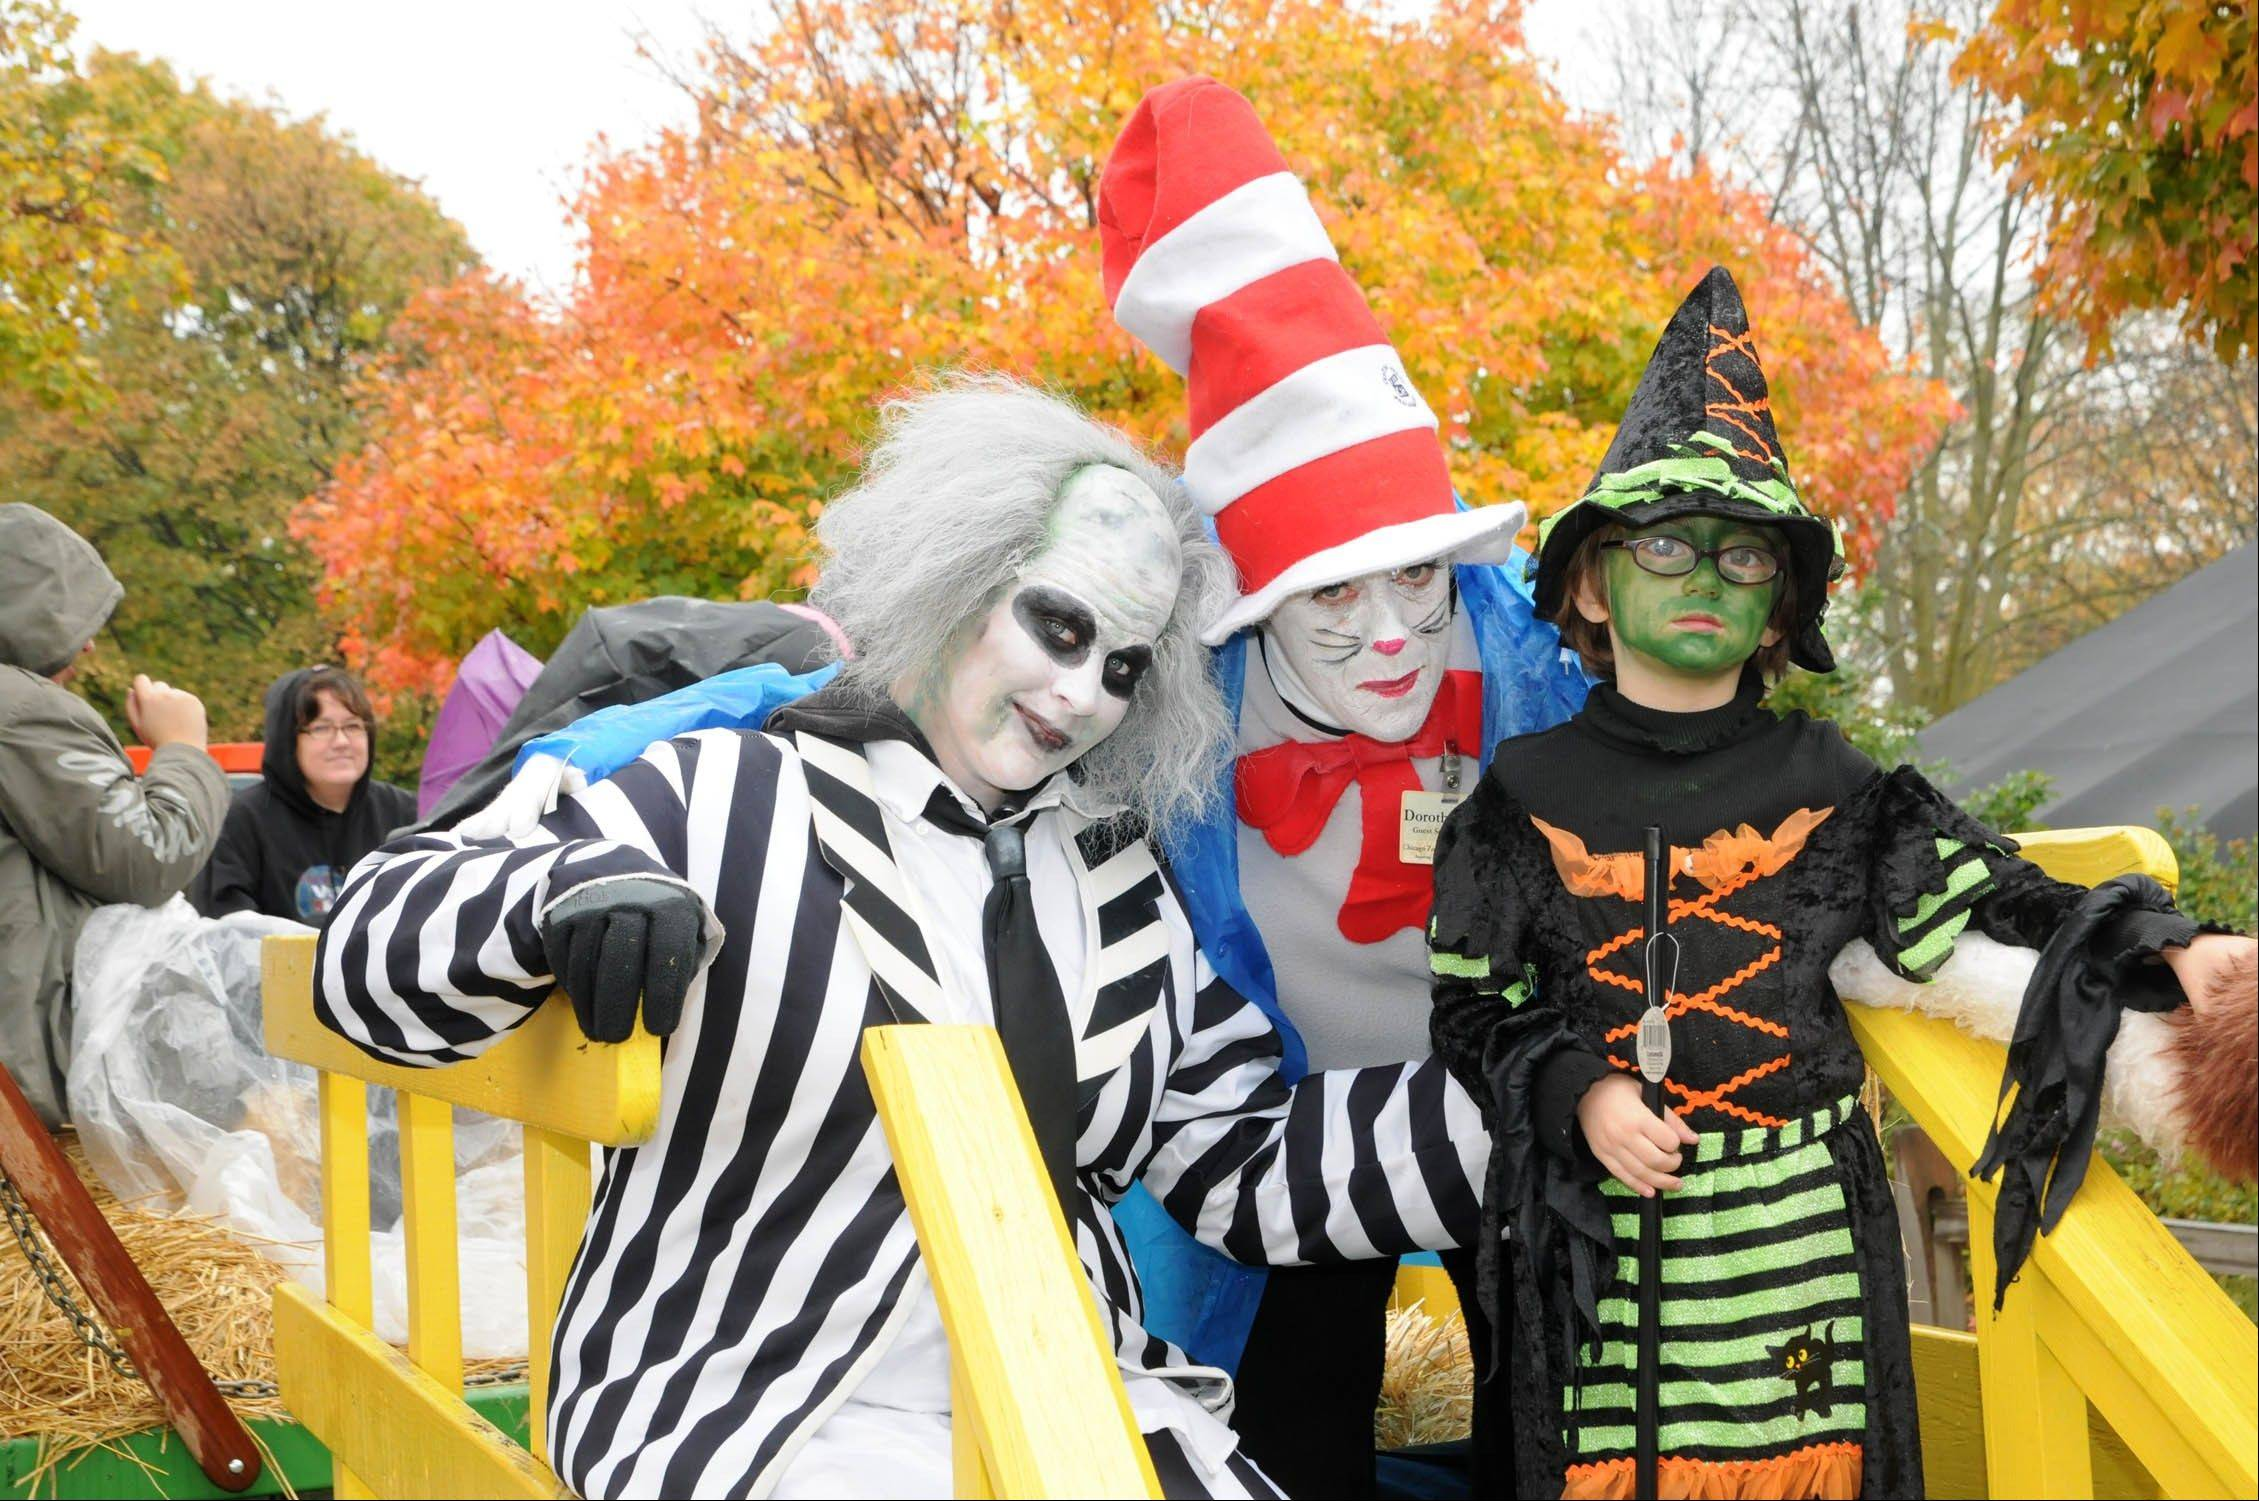 Weekend picks: Scare up some Halloween fun